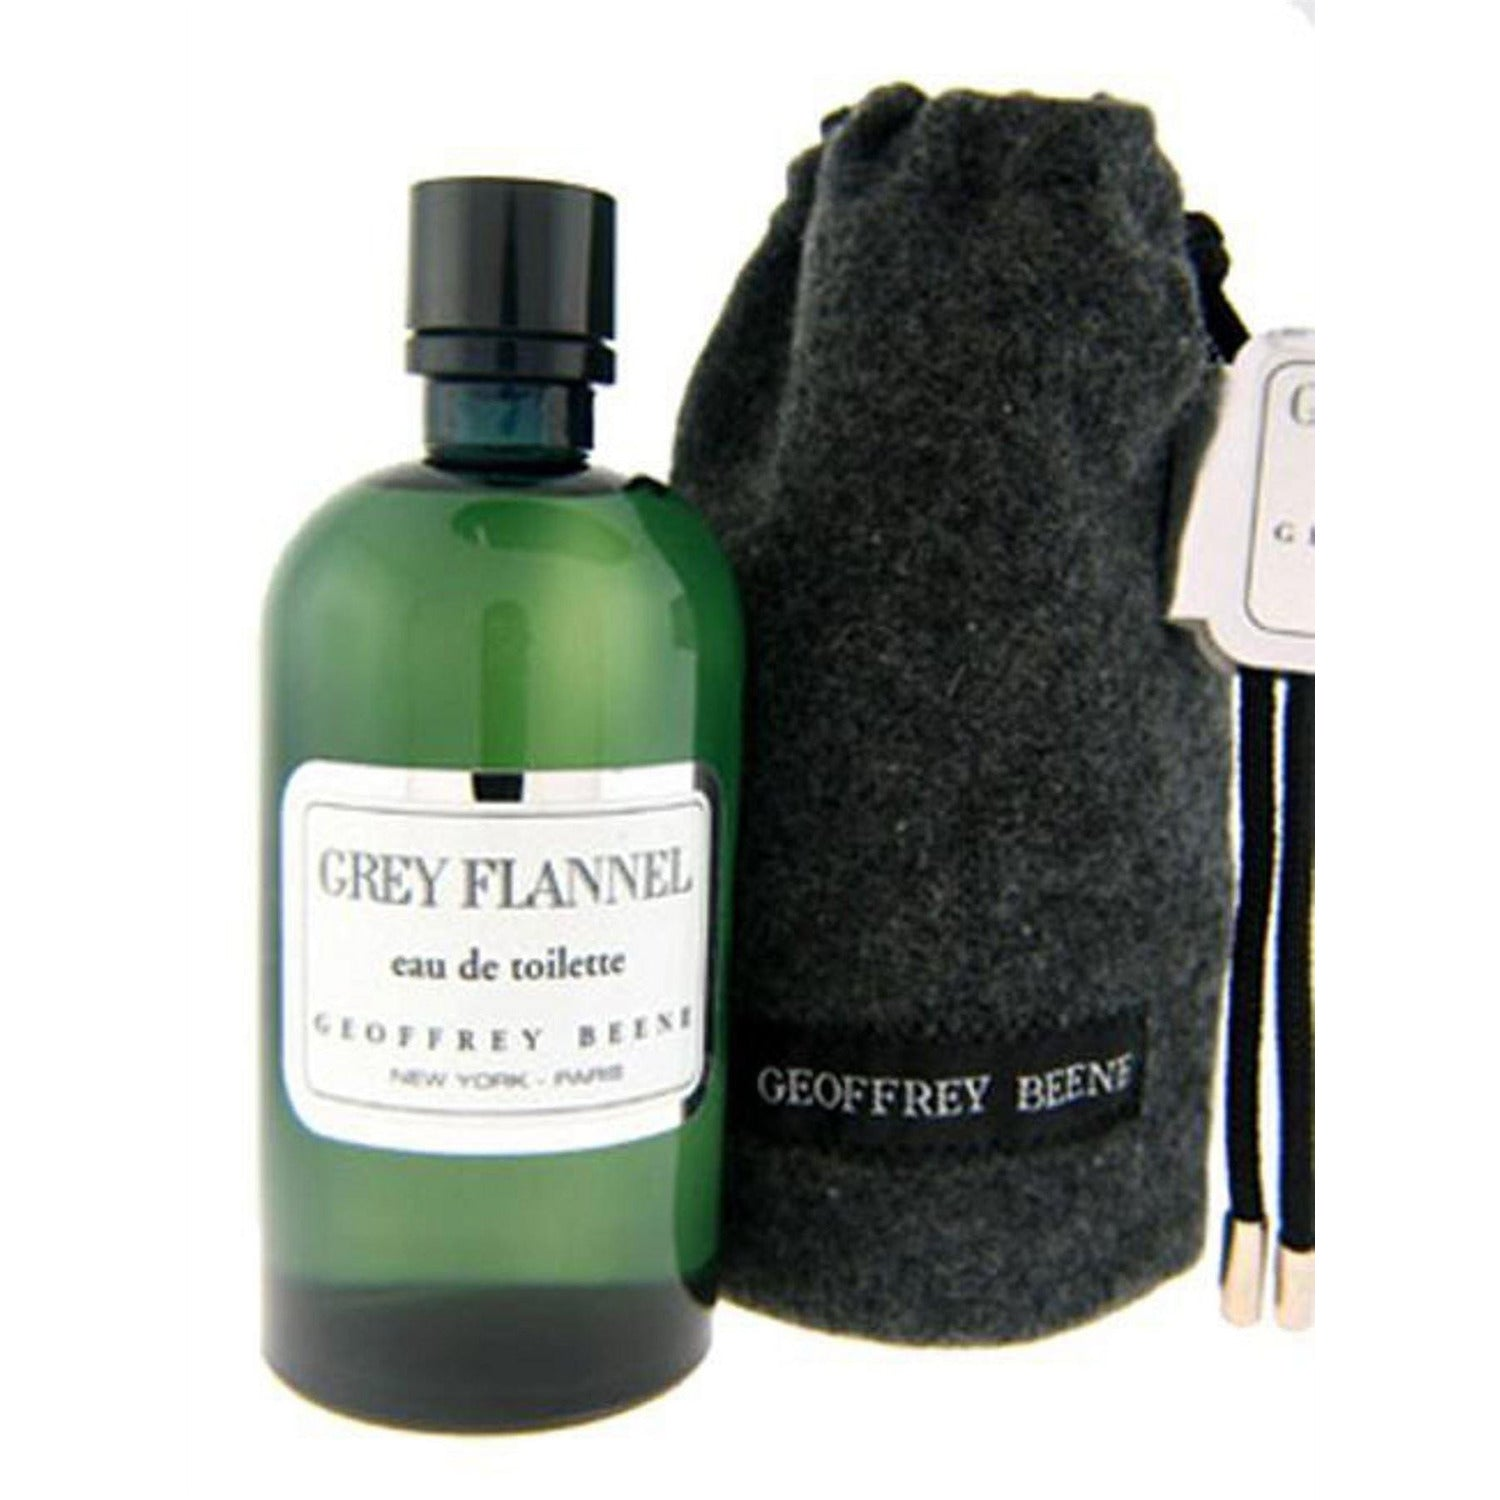 grey-flannel-geoffrey-beene-edt-cologne-8-0-oz-men-new-in-box